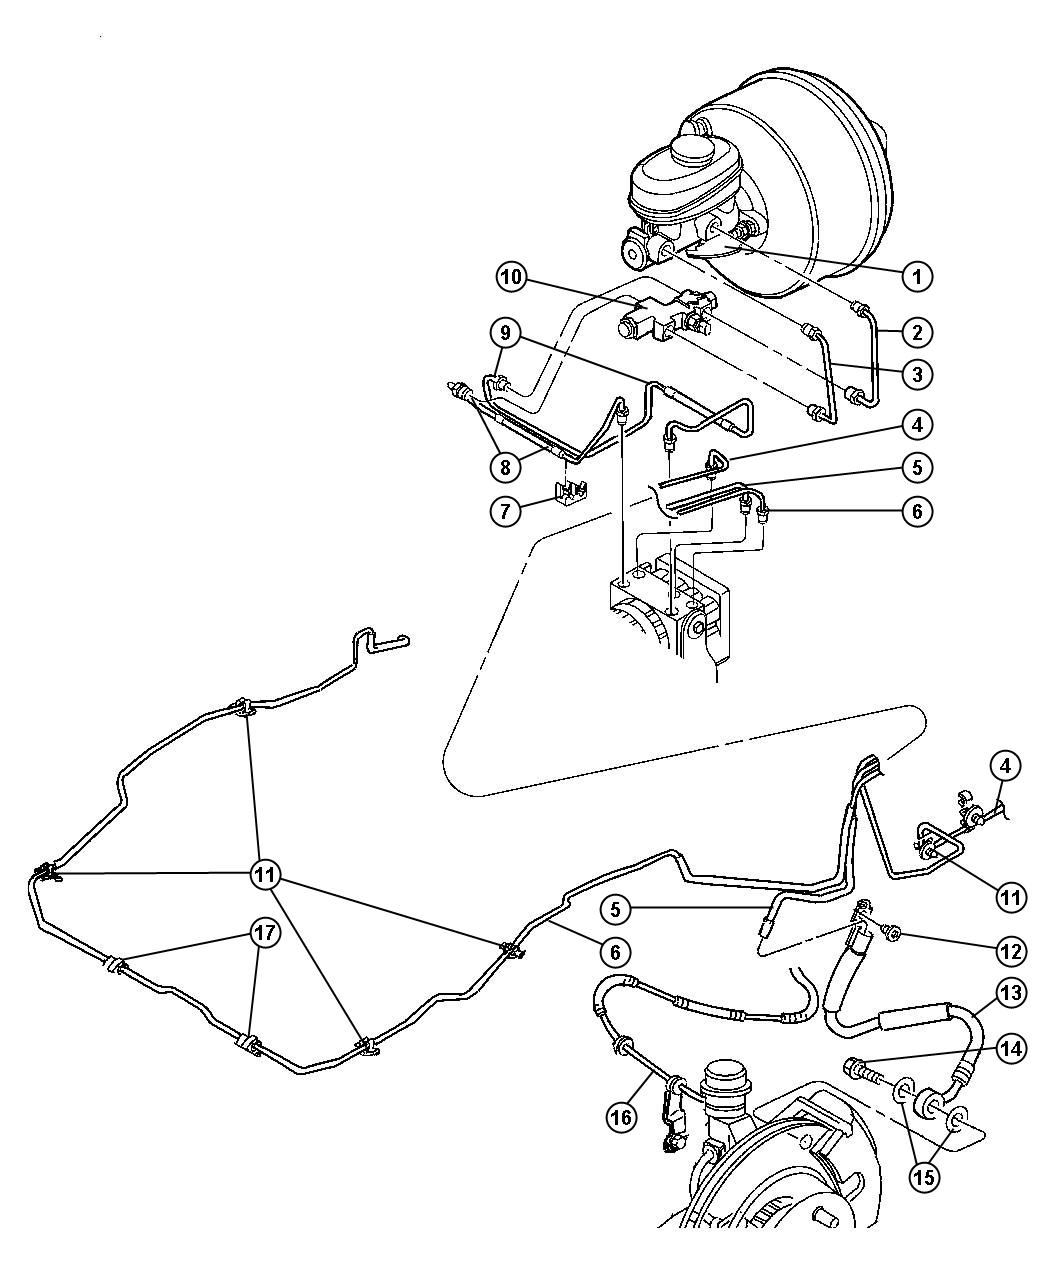 2001 toyota tundra front suspension diagram  2001  free